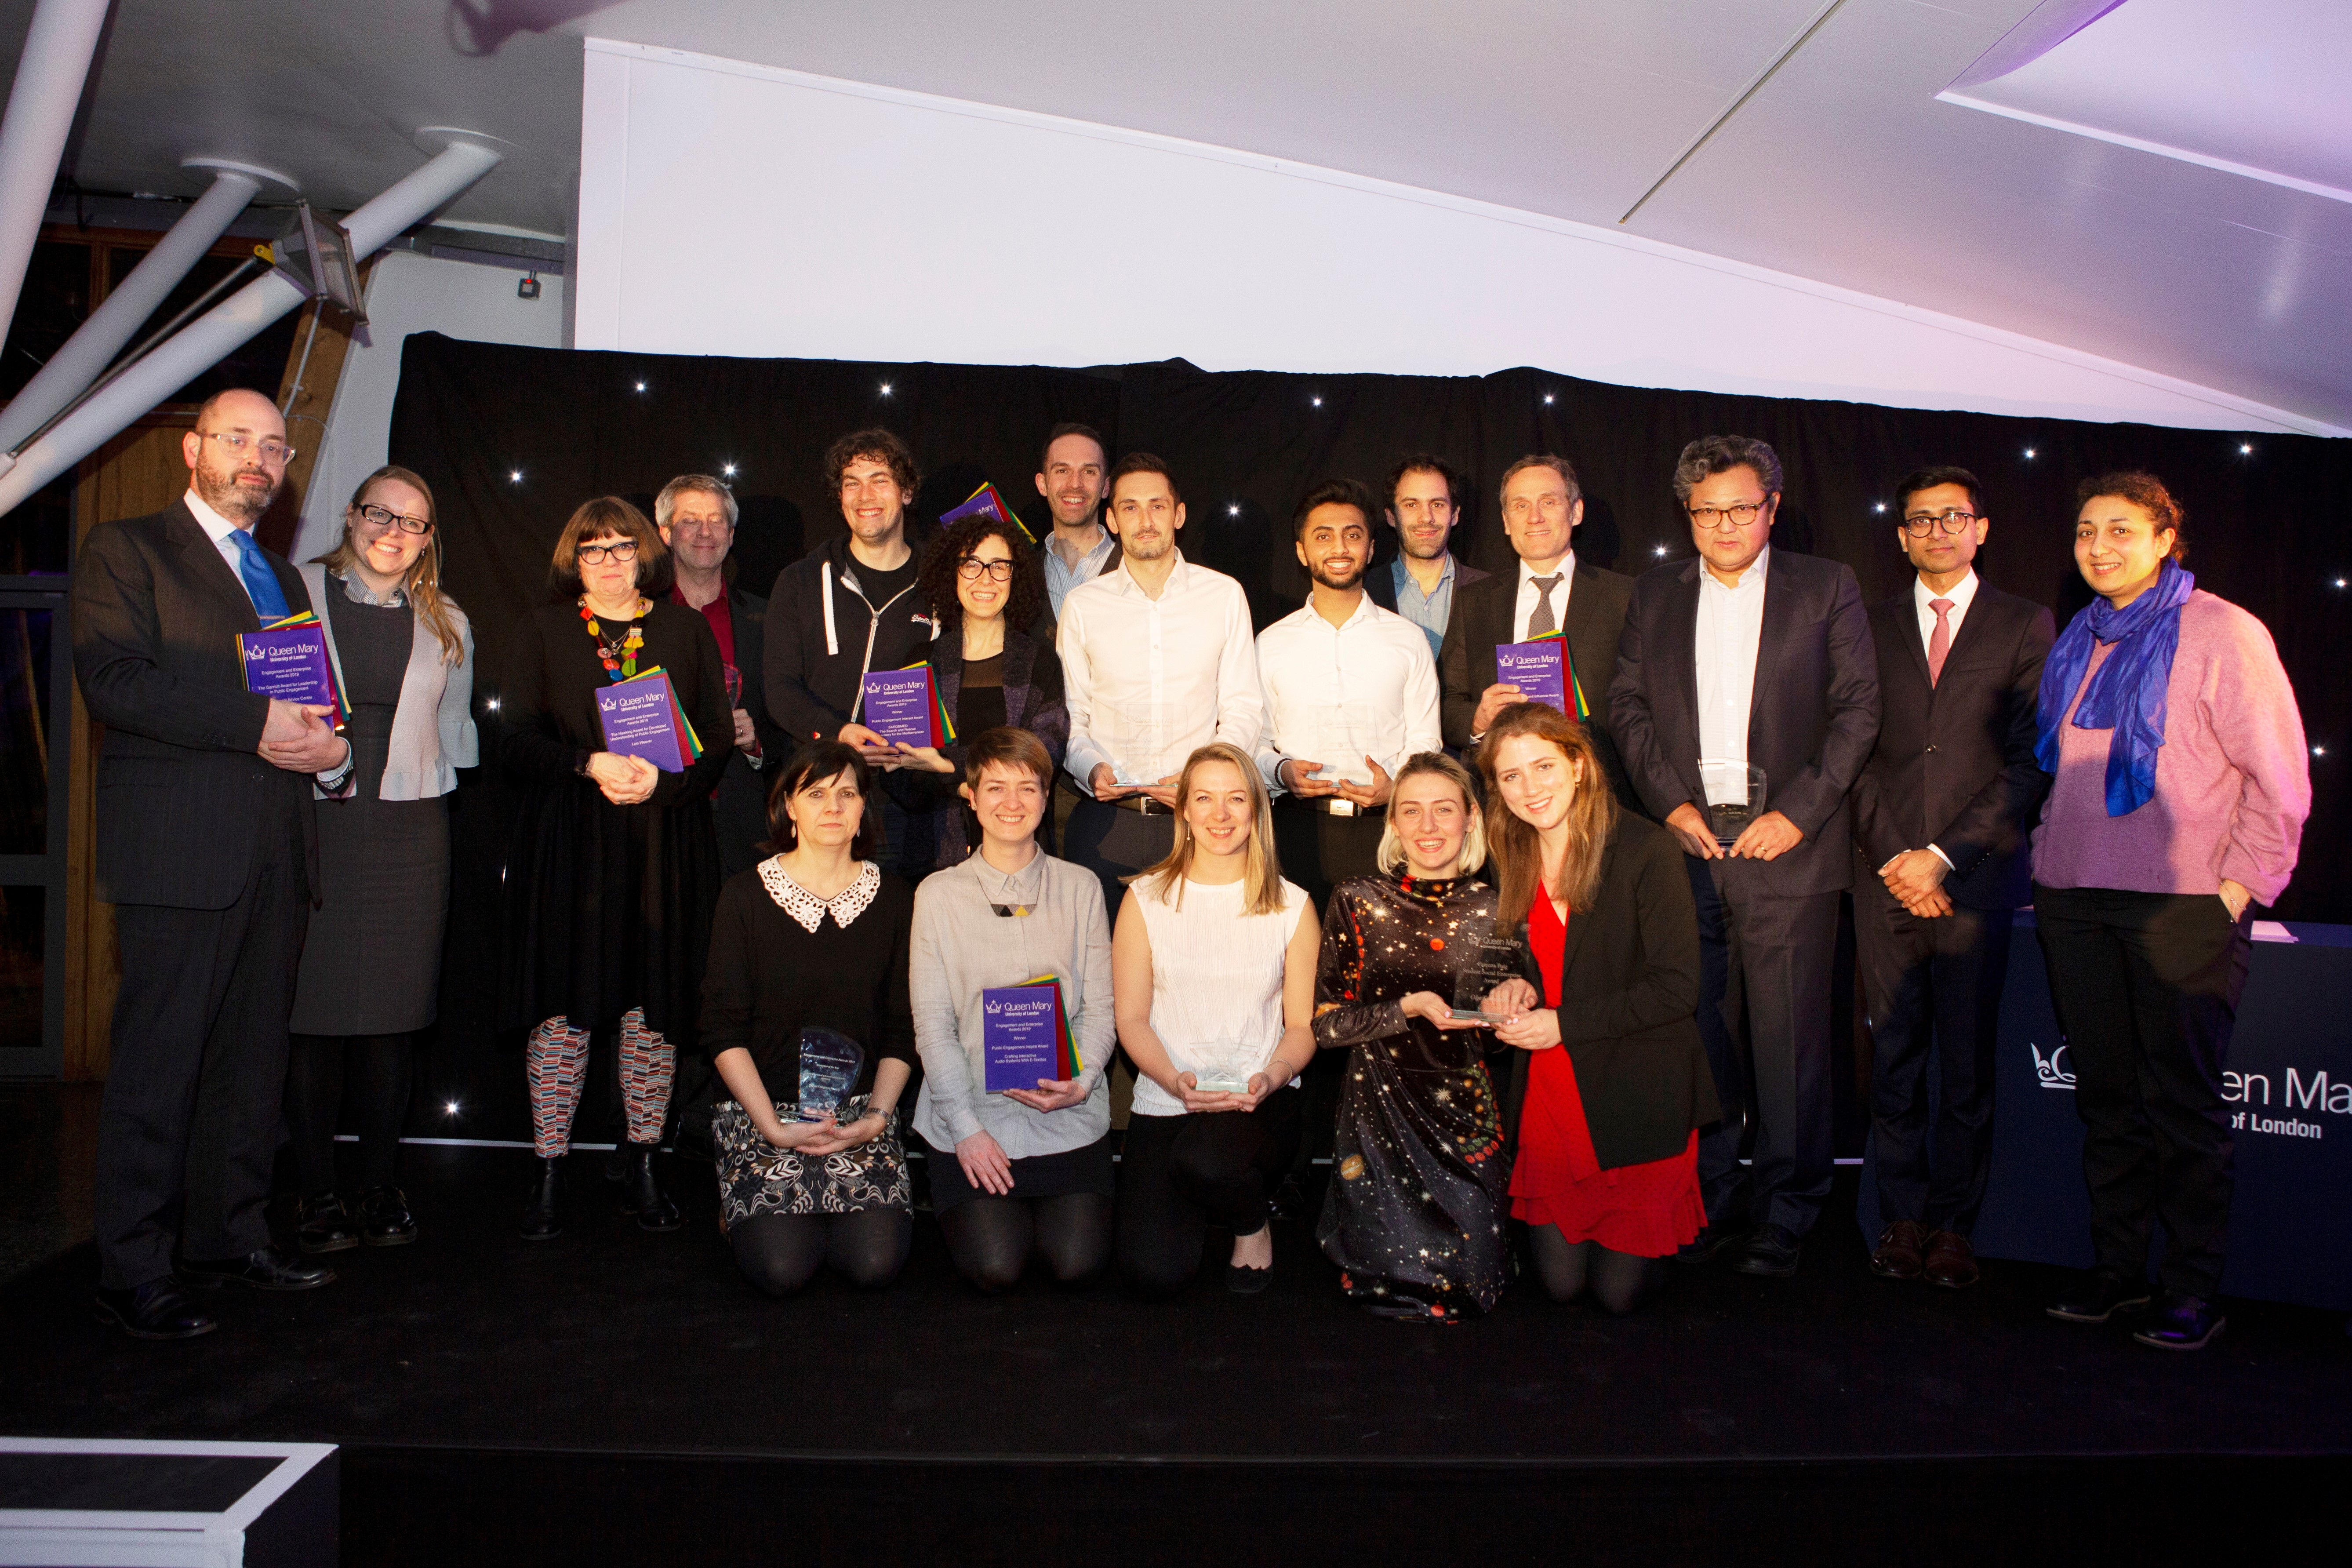 Winners of the Engagement and Enterprise Awards 2019